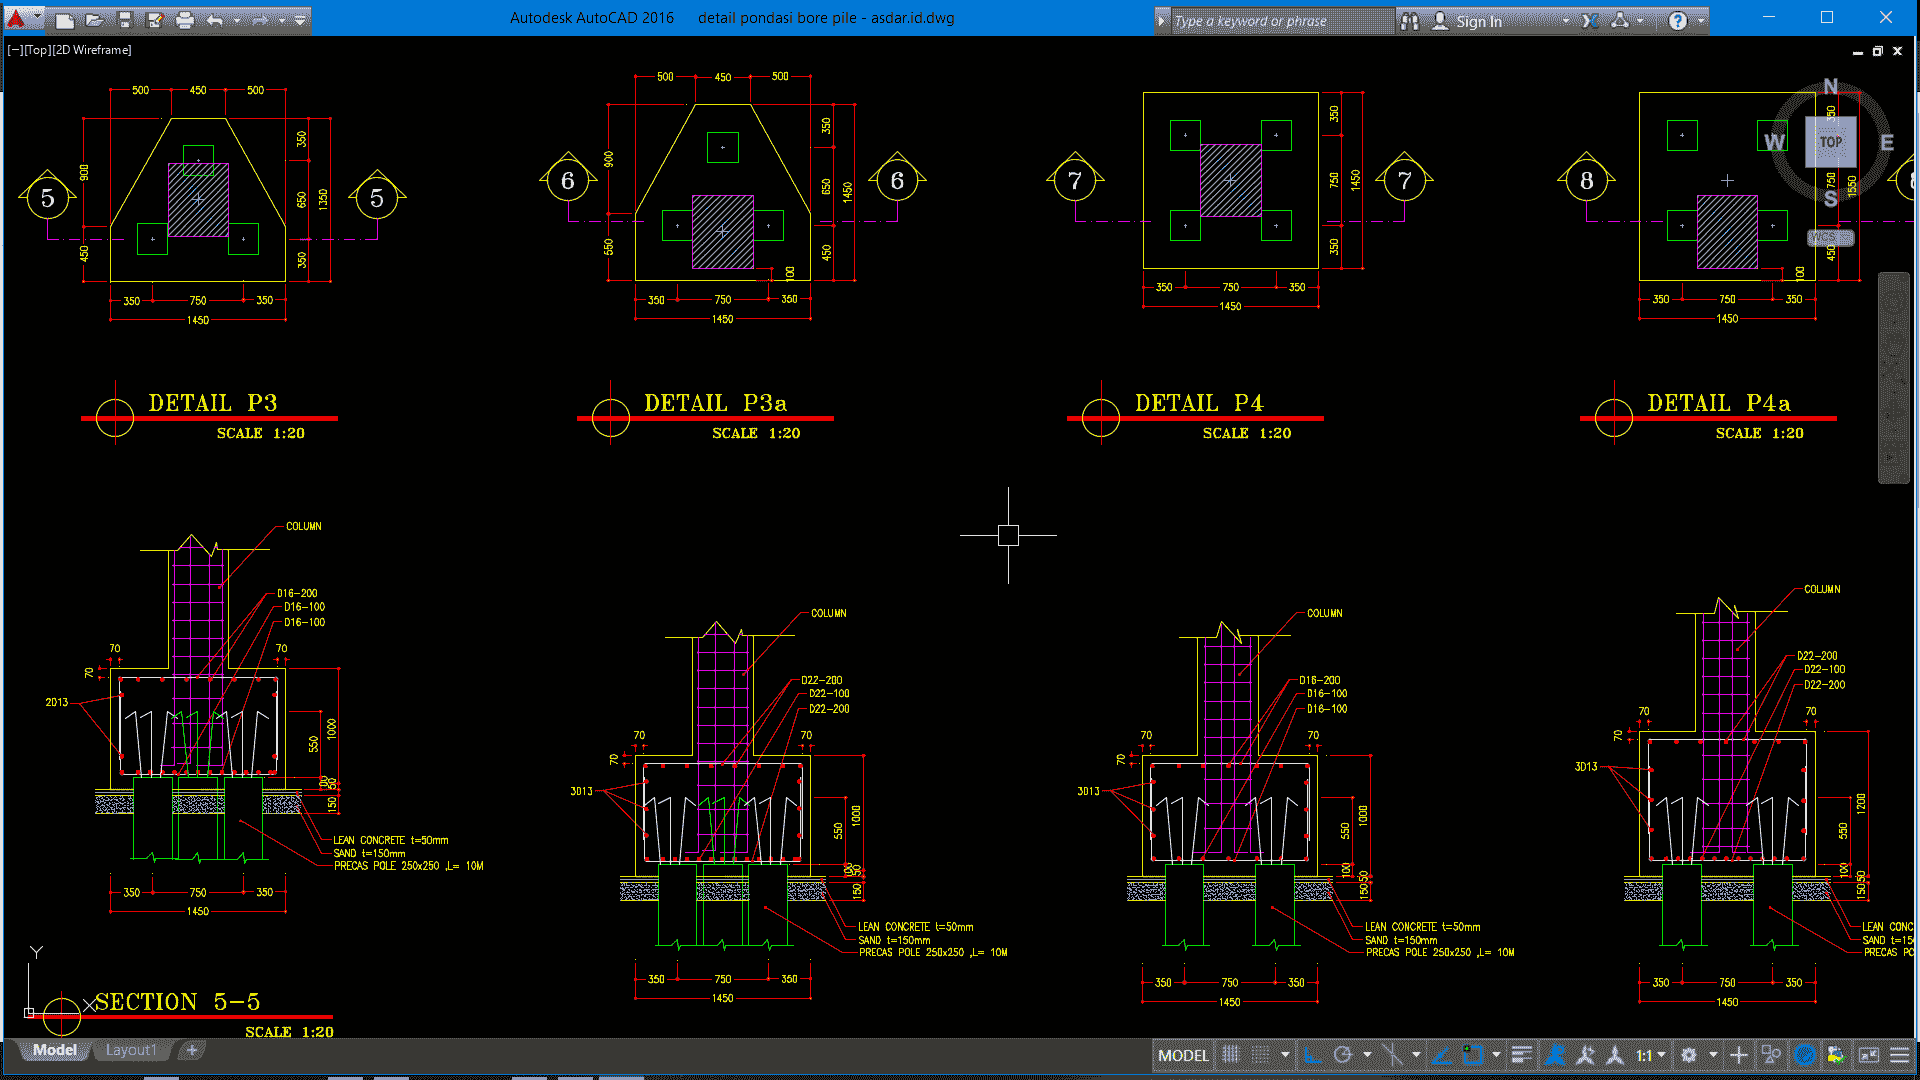 Download Gambar Detail Pondasi Bore Pile Dwg Autocad Asdar Id